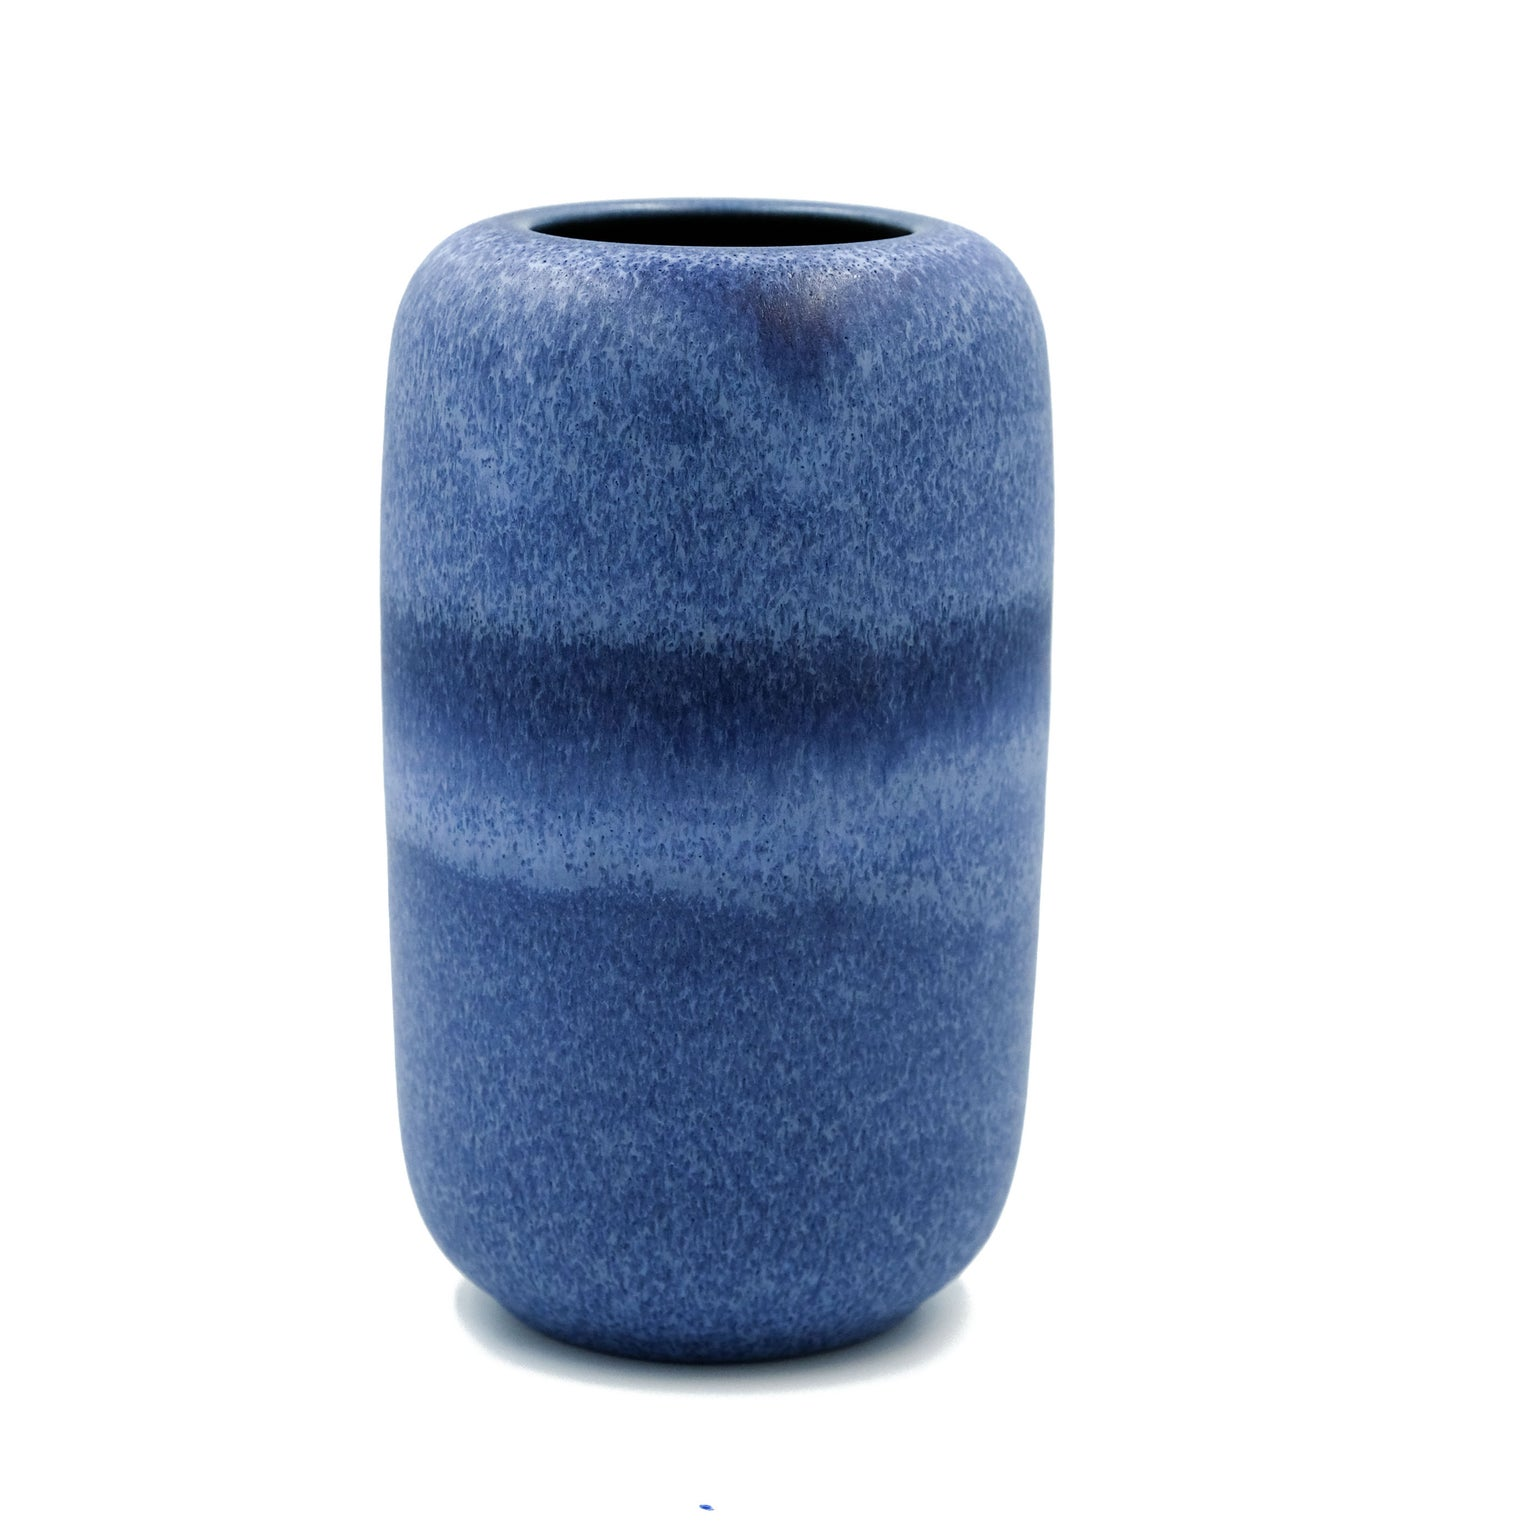 Image of UNIKA BOB VASE IN INDIGO BLUE GLAZE